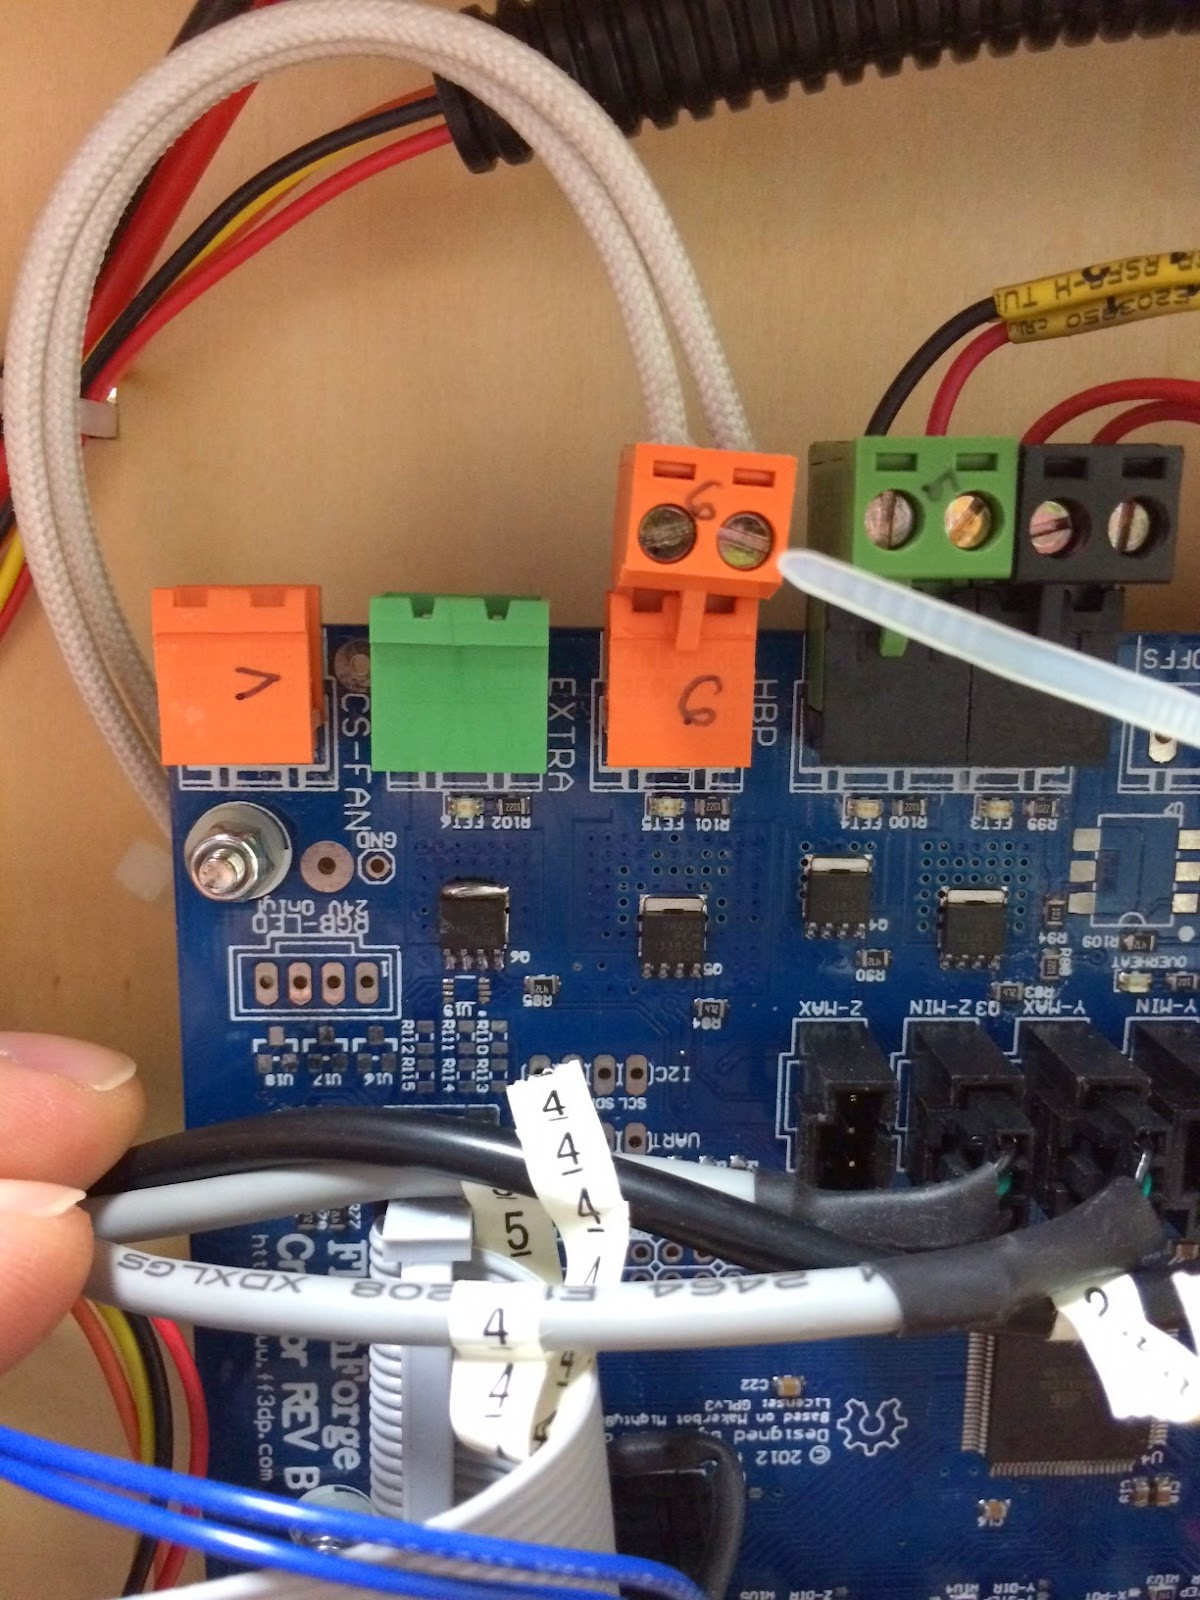 Extra Fet Fet6 Activation Via Gcode Or Filament Fan Option On Iron For Computer Motherboards Circuit Board 11m Cable Ebay Ok So I Finally Bit The Bullet And Installed My Mosfet Connector Block Auto Reset Cap Last Night